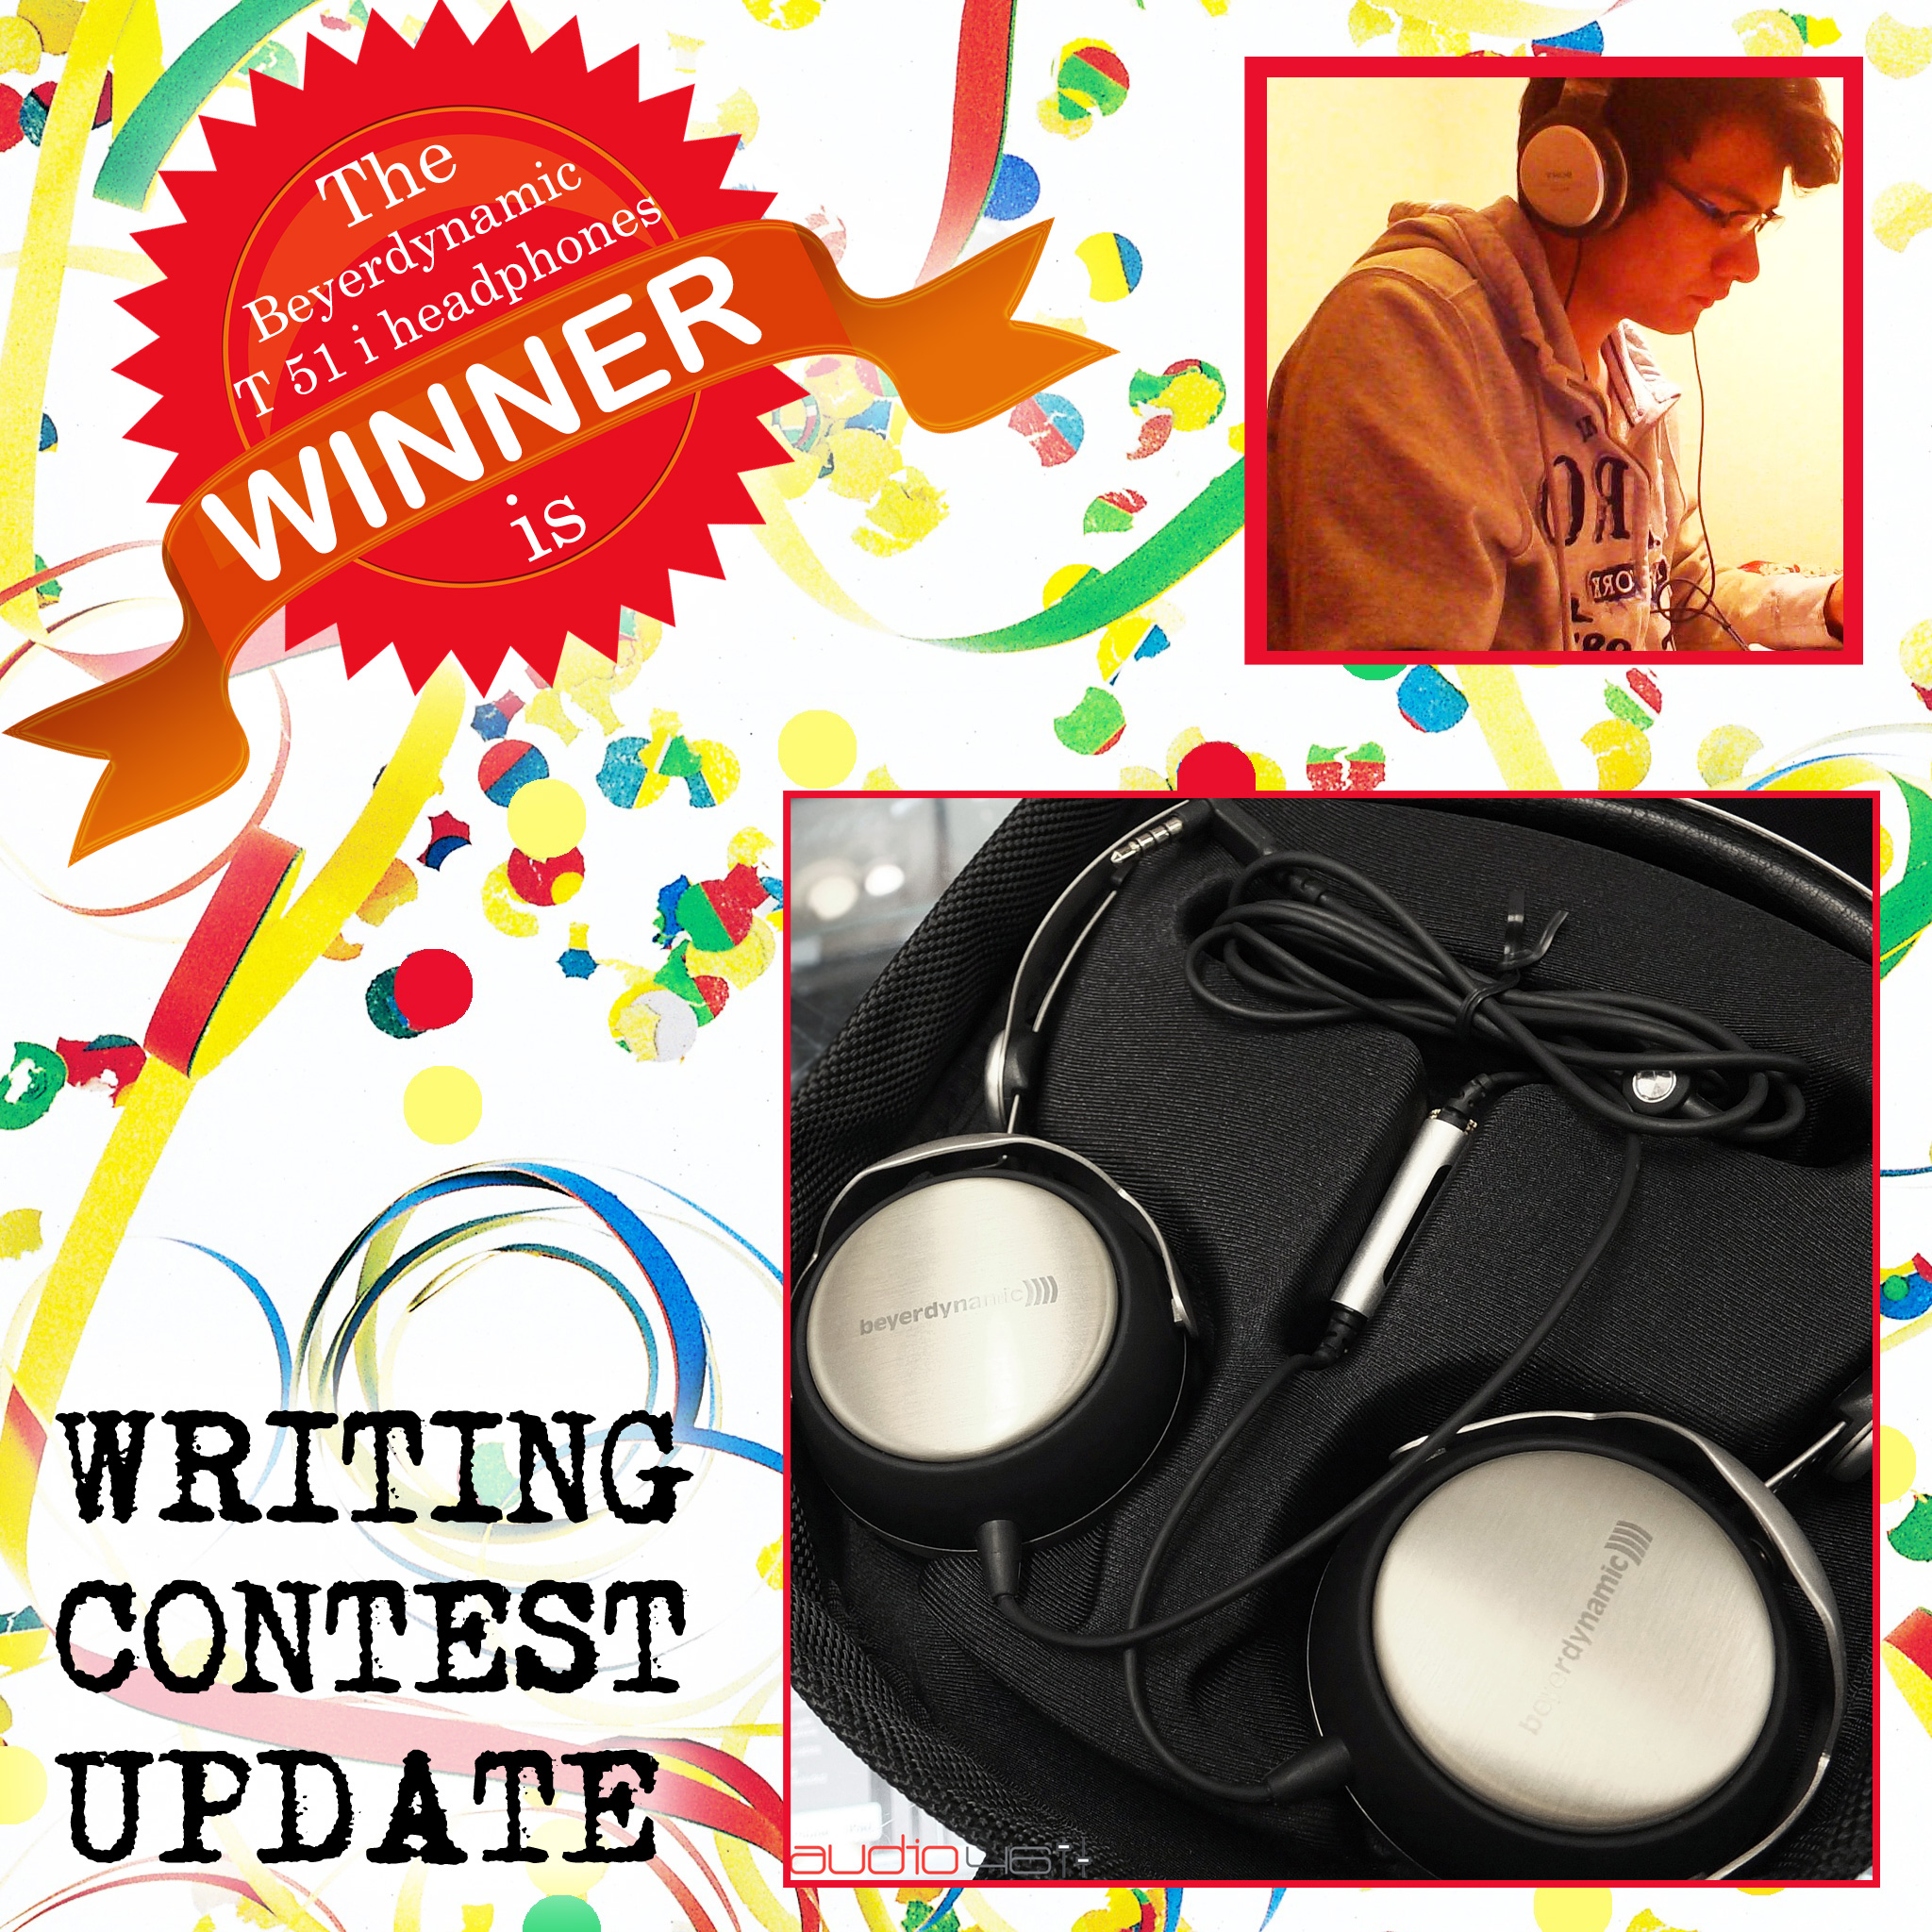 Audio46 Announces Our Headphone Giveaway Winner